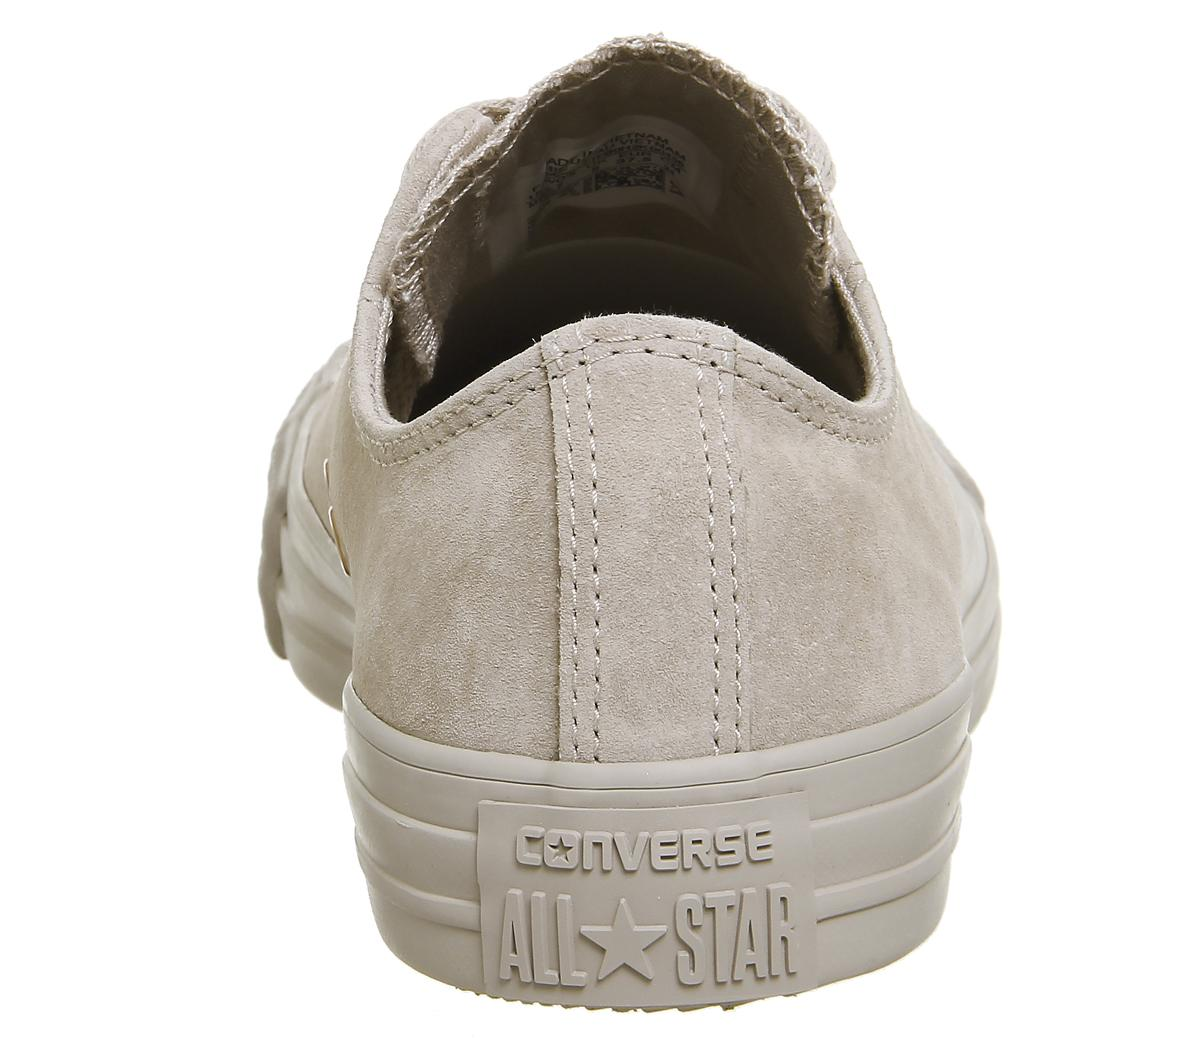 Converse All Star Low Leather Mushroom Blush Gold Sneaker